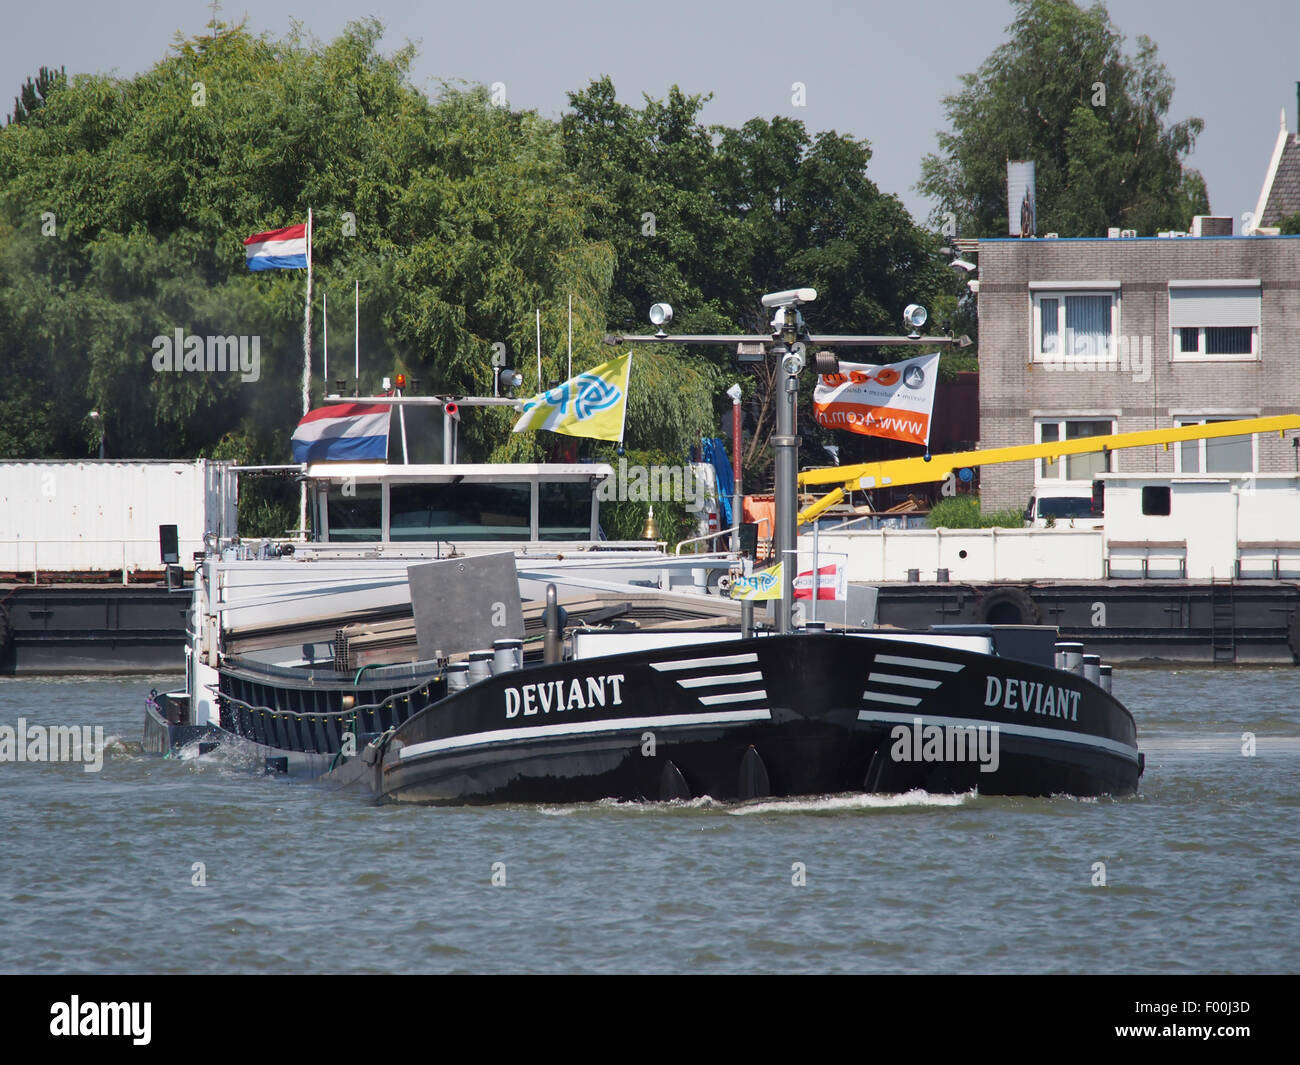 Deviant - ENI 03310475, Noord rivier pic1 - Stock Image